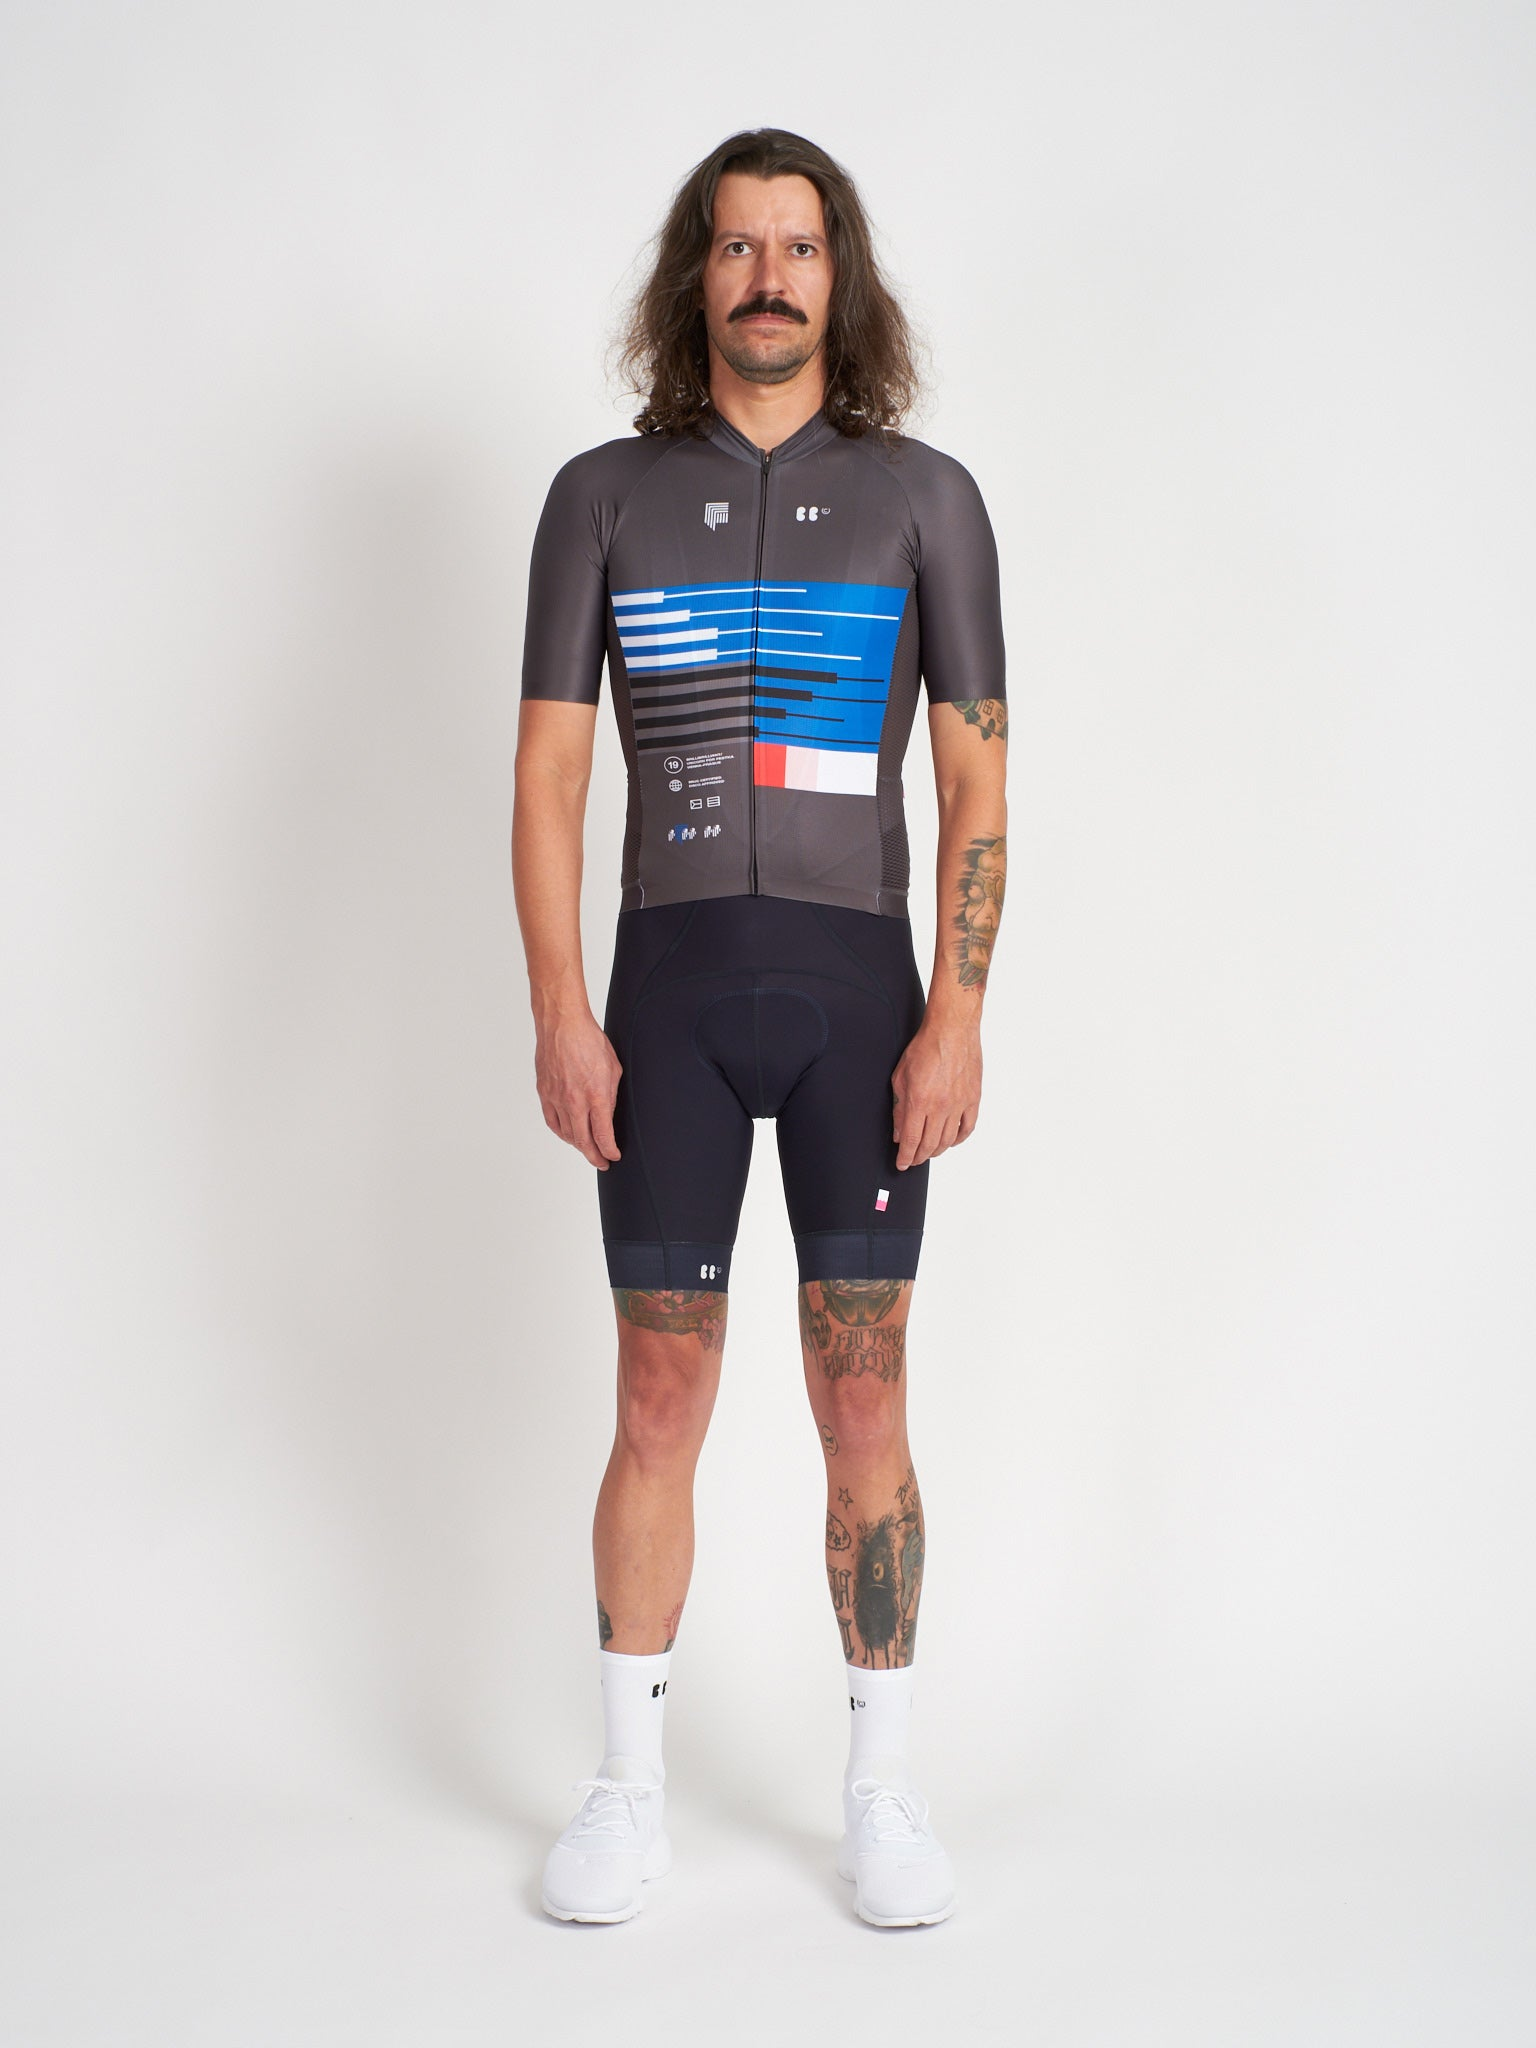 BBUC for Festka Cycling Jersey Blue